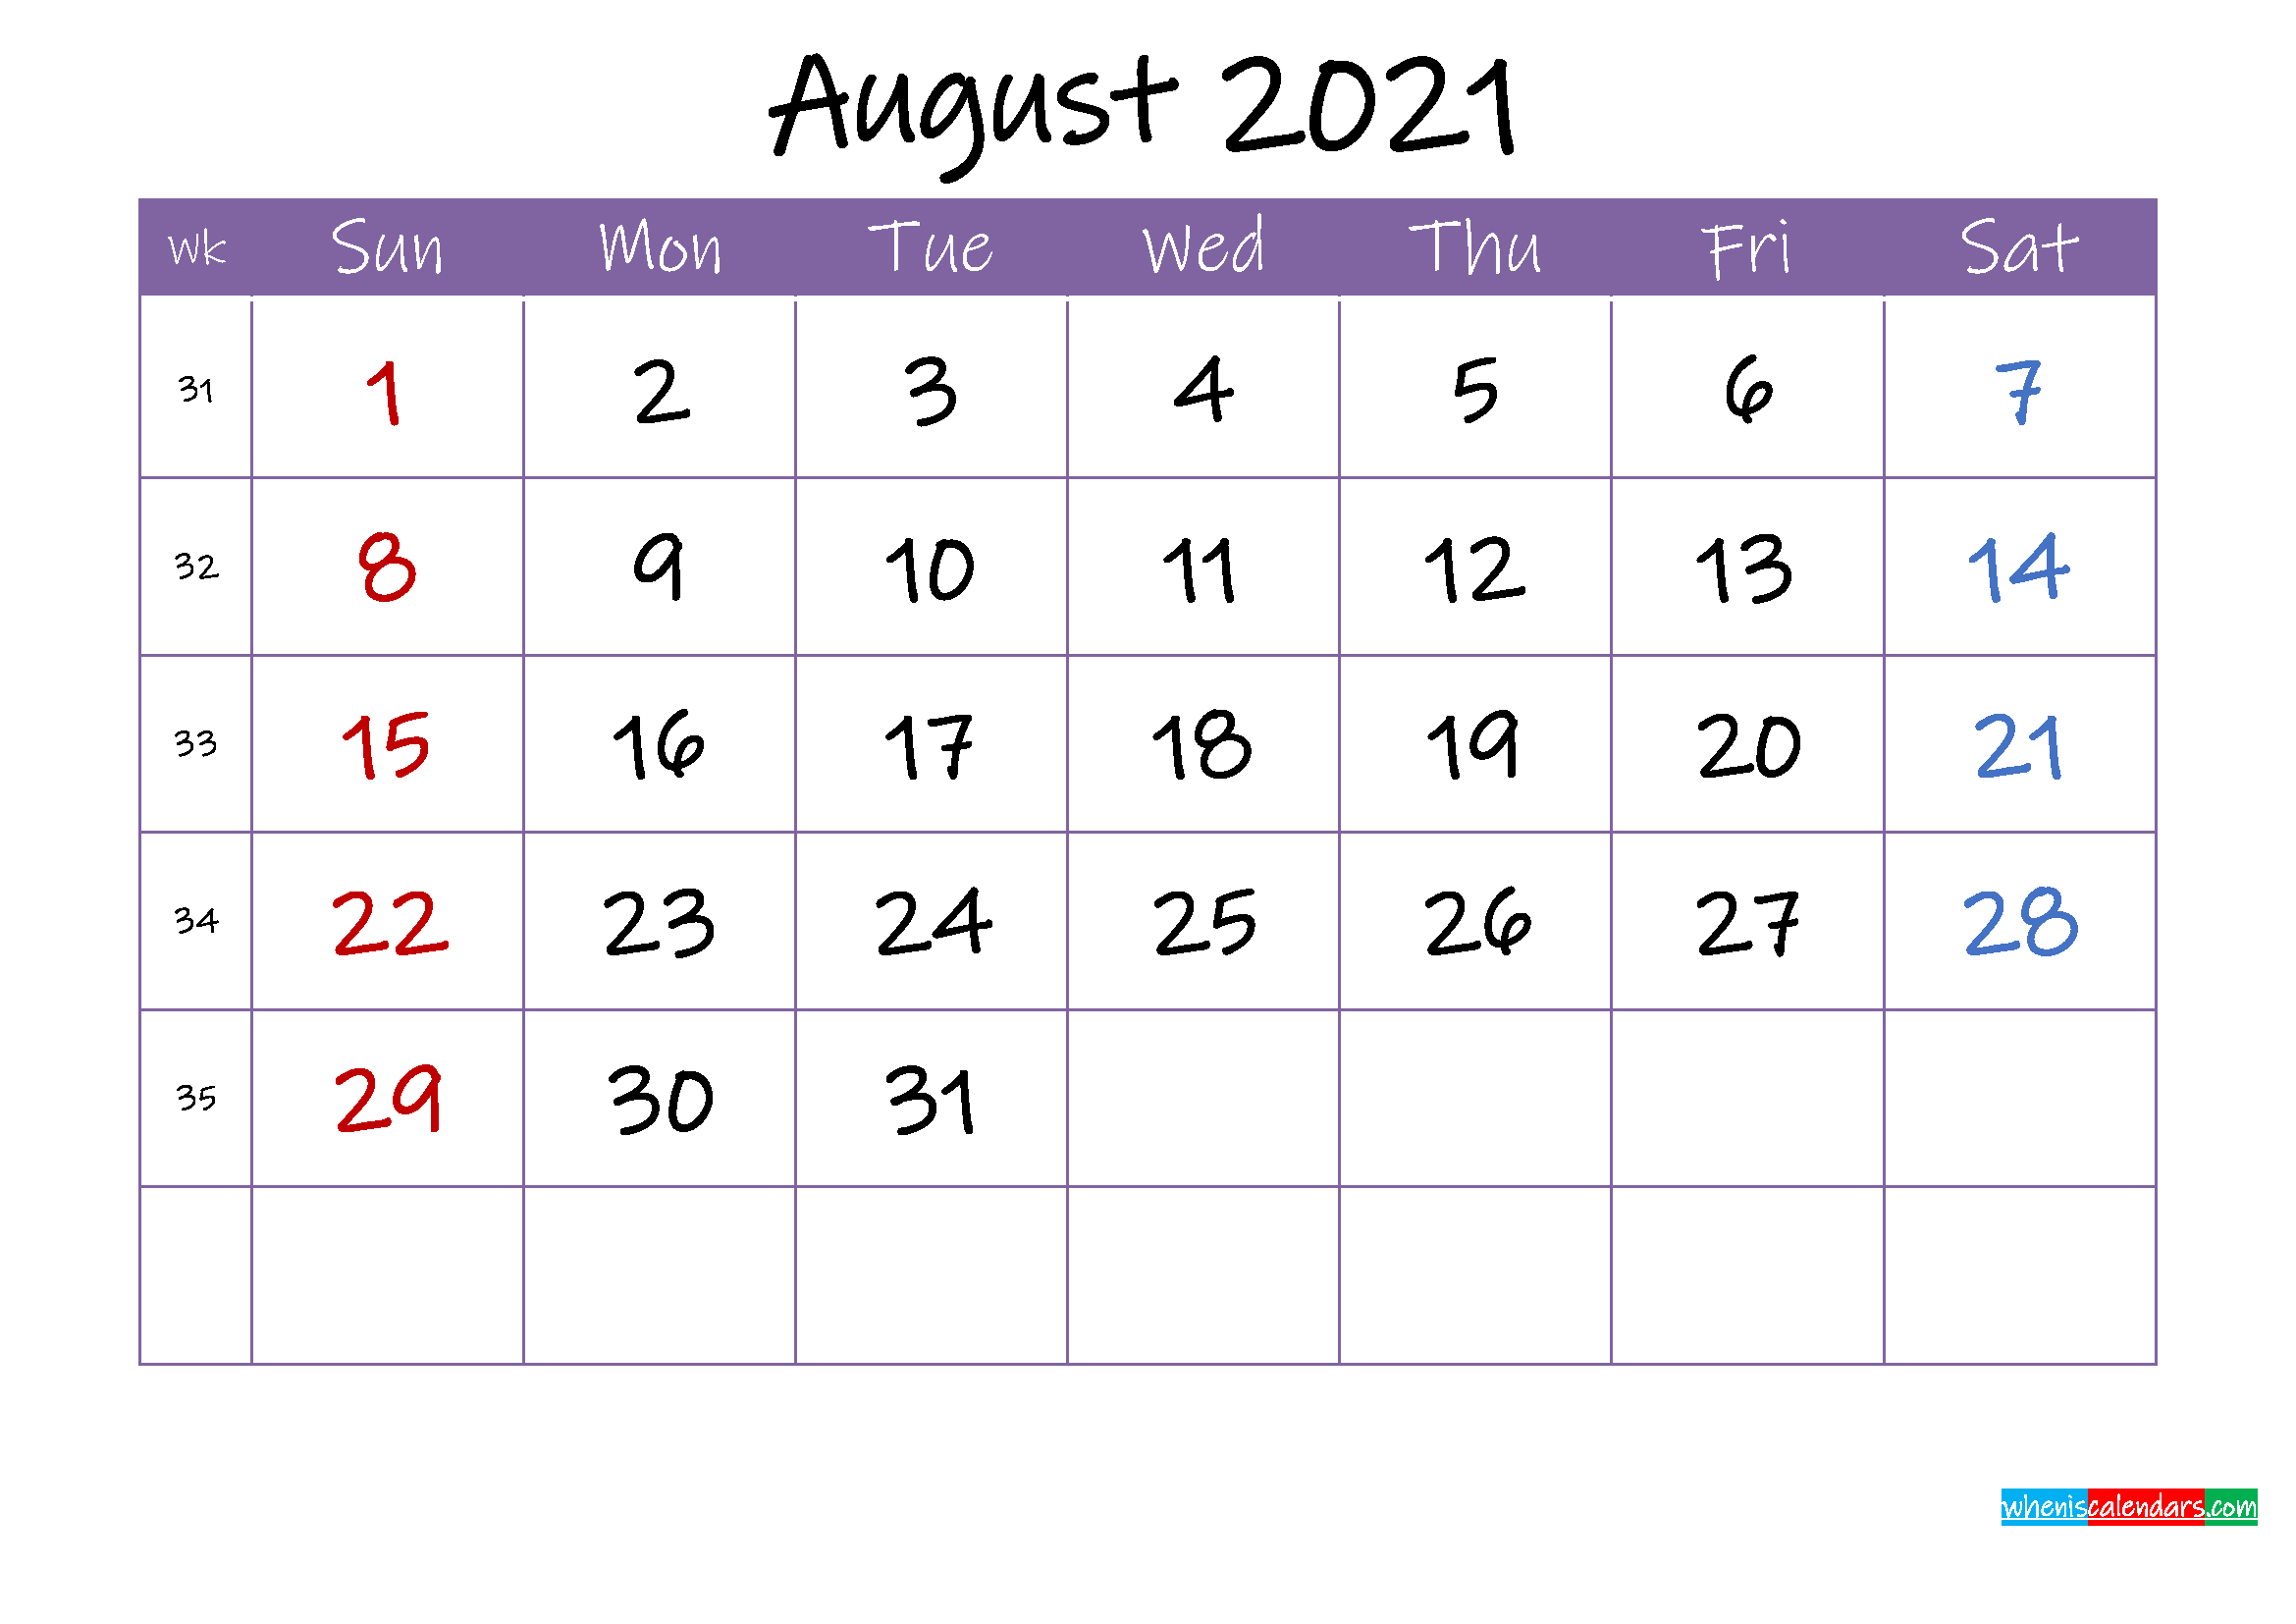 August 2021 Calendar with Holidays Printable - Template ...